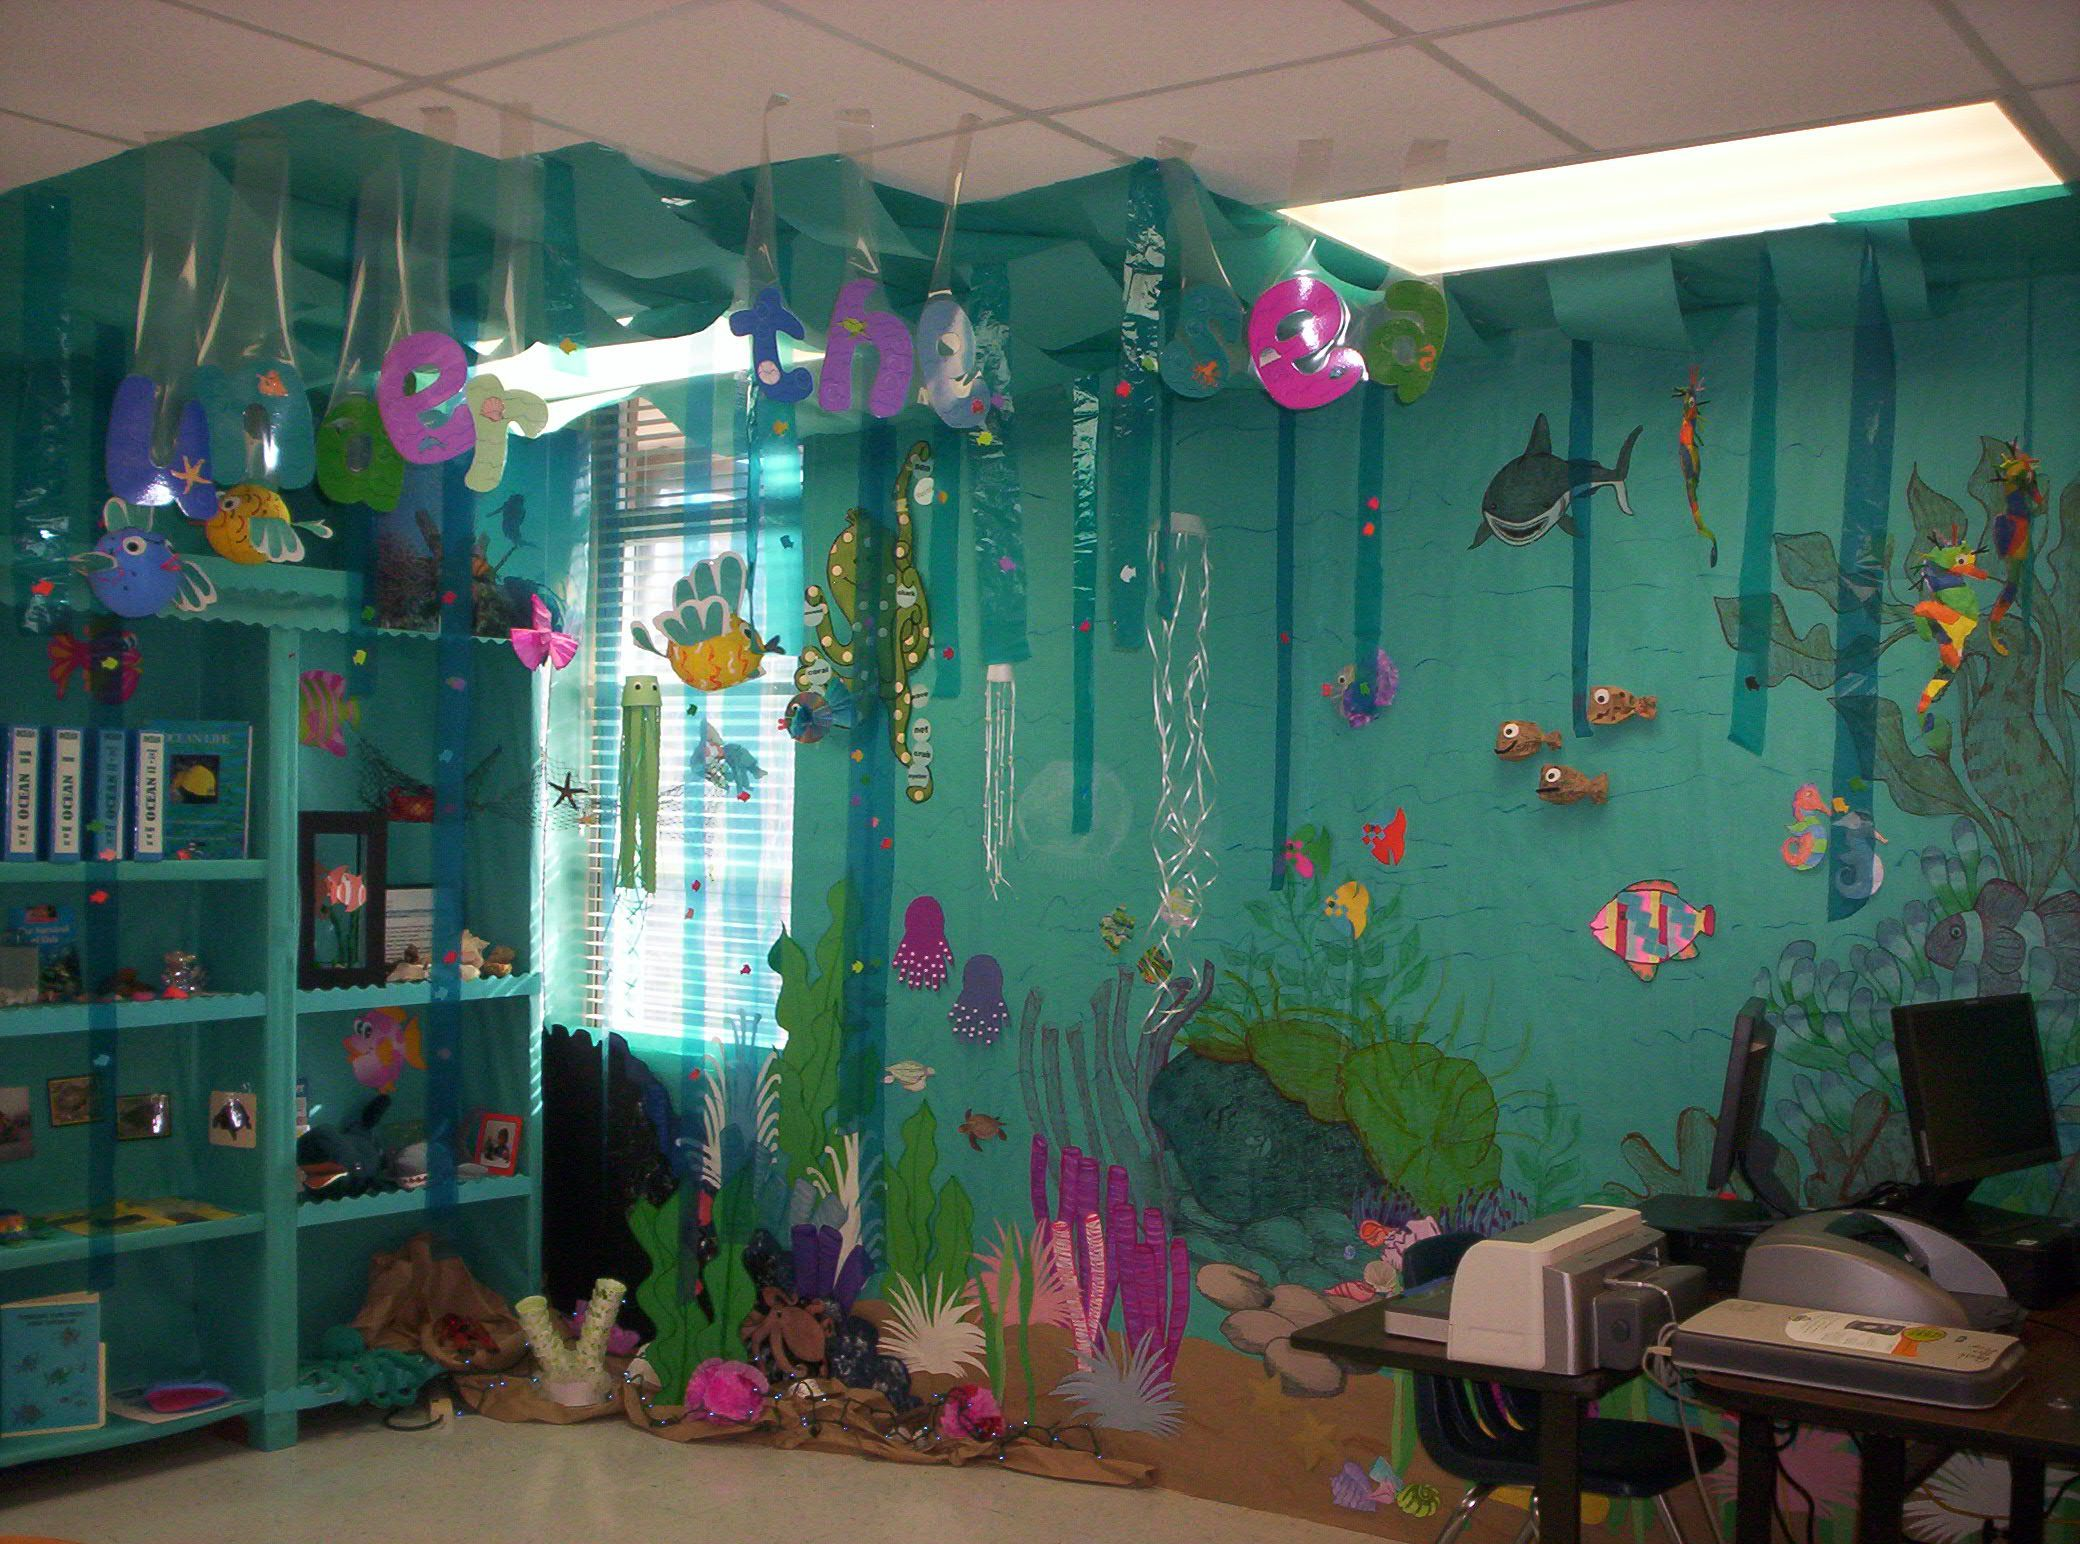 Classroom Decorating Ideas Ocean Theme ~ Under the sea classroom theme ideas